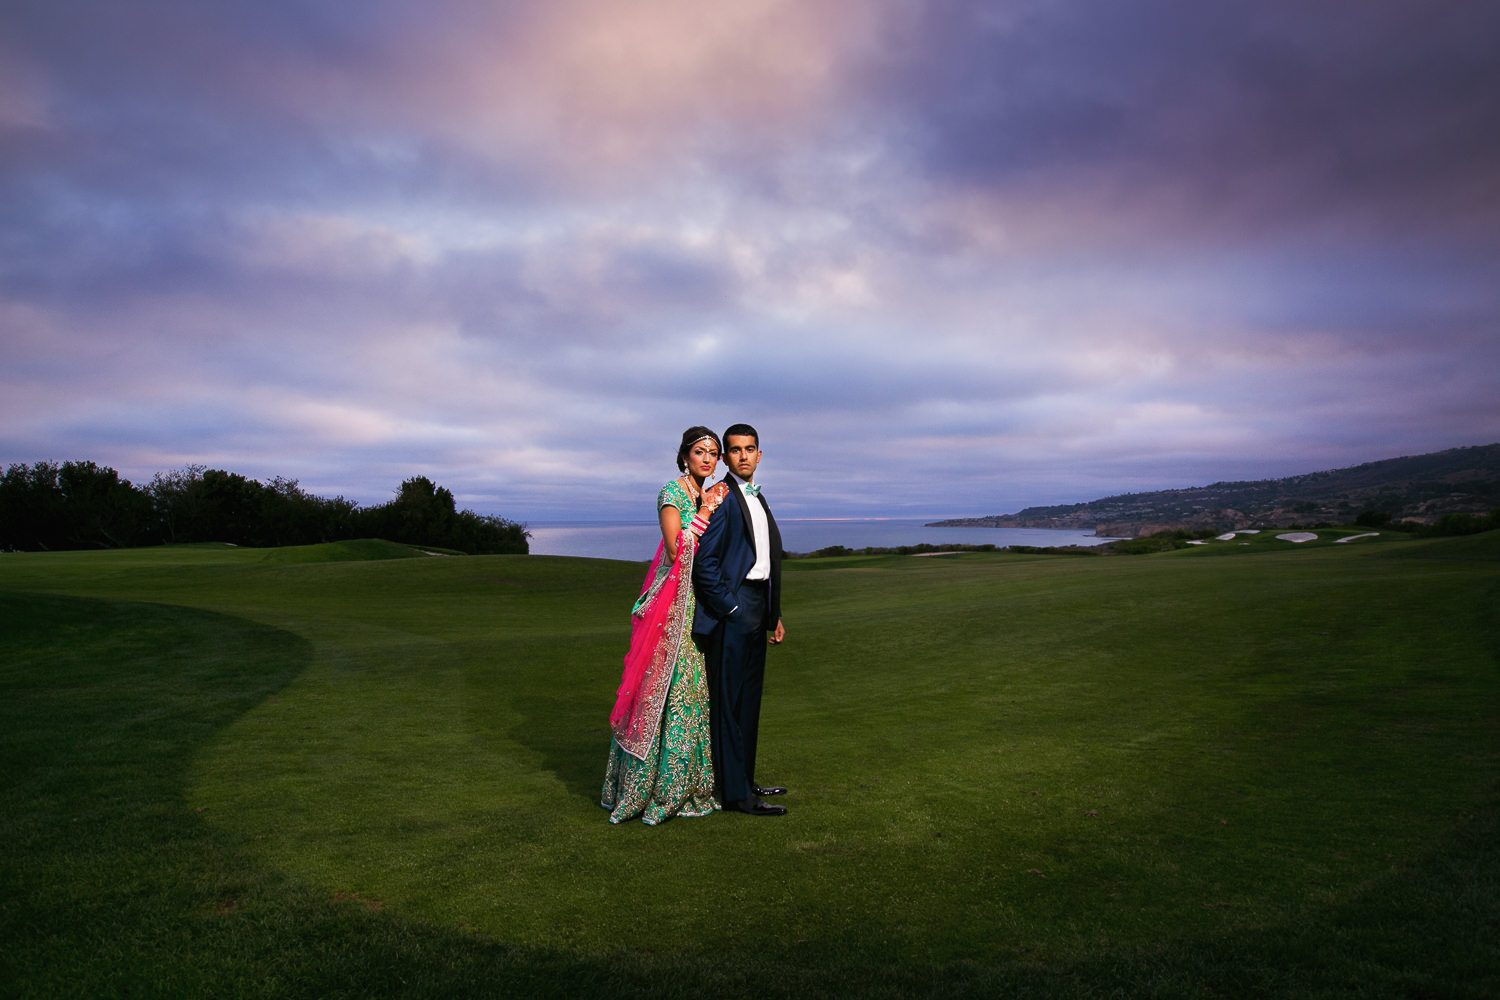 Trump National Golf Club Wedding - Embracing On the Golf Course